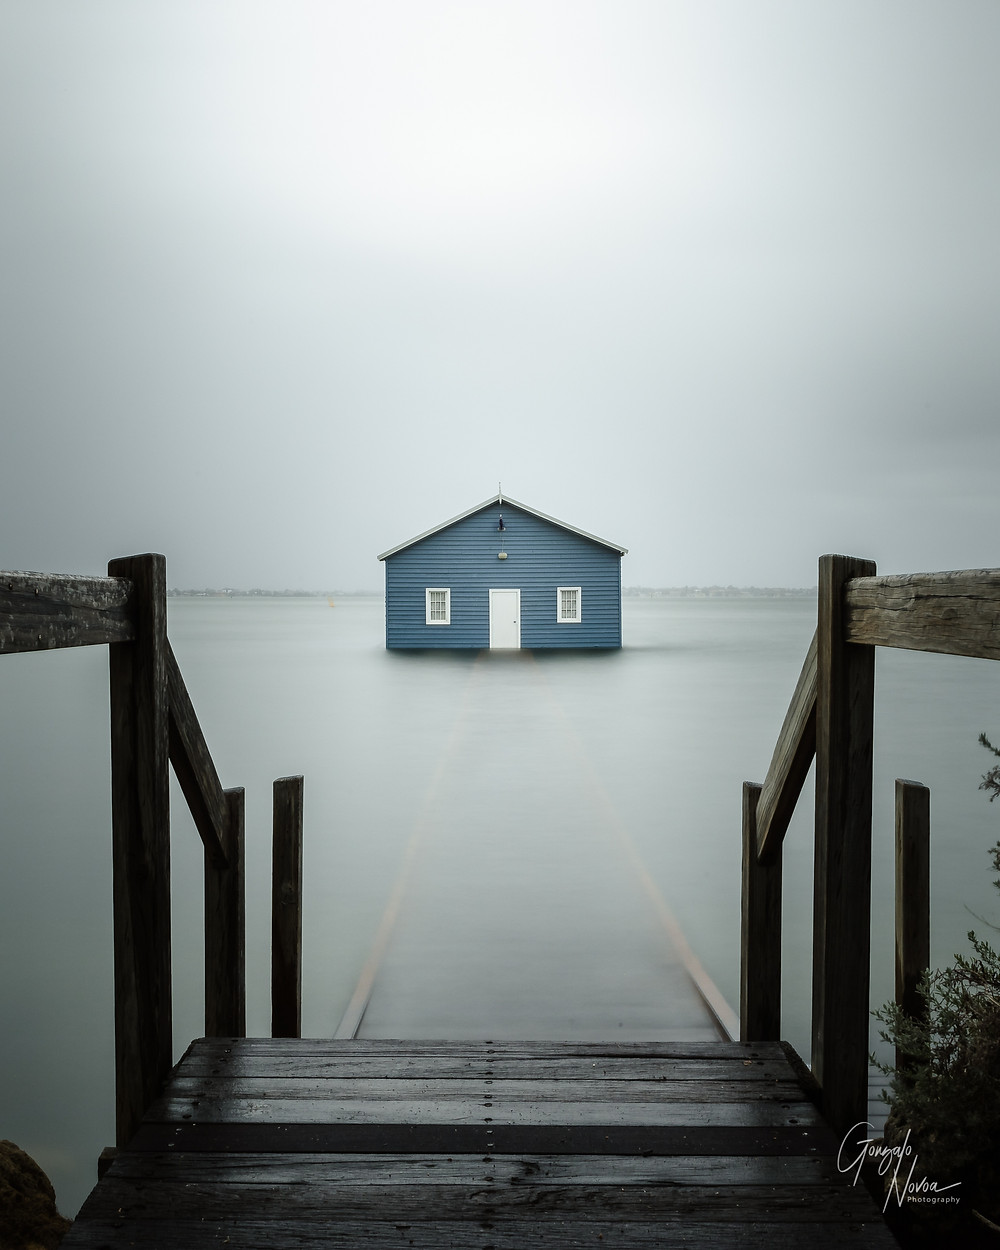 Crawley Edge Boatshed in Perth, Western Australia, also known as the Blue boat house.